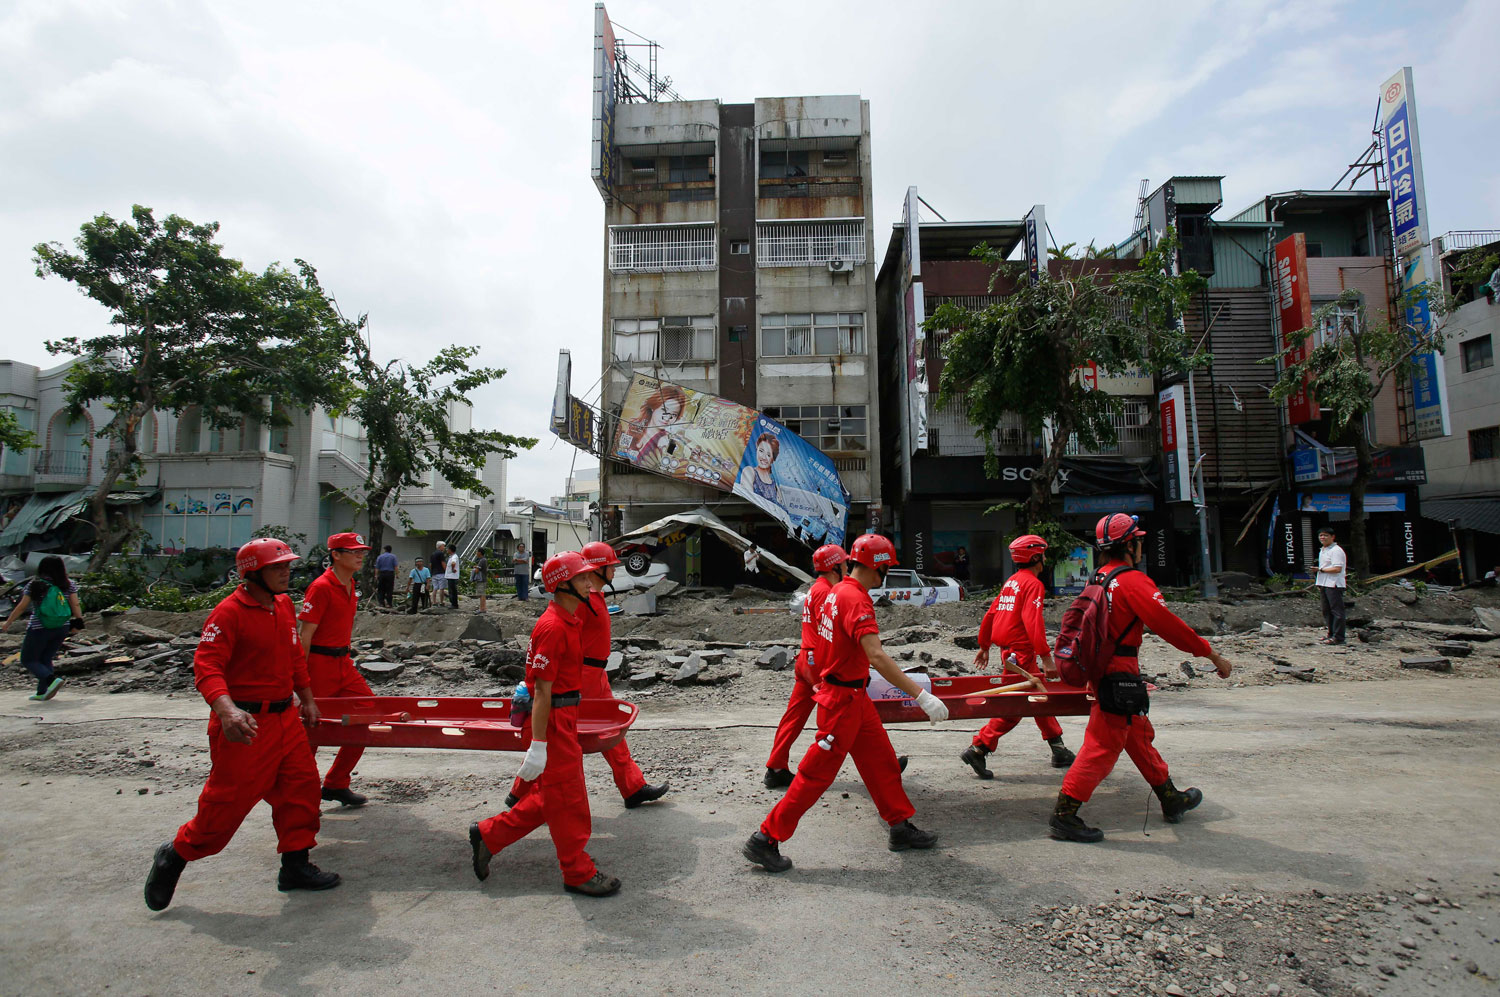 Emergency rescue workers move through the damage from a massive gas explosion in Kaohsiung, Taiwan on Aug. 1, 2014.